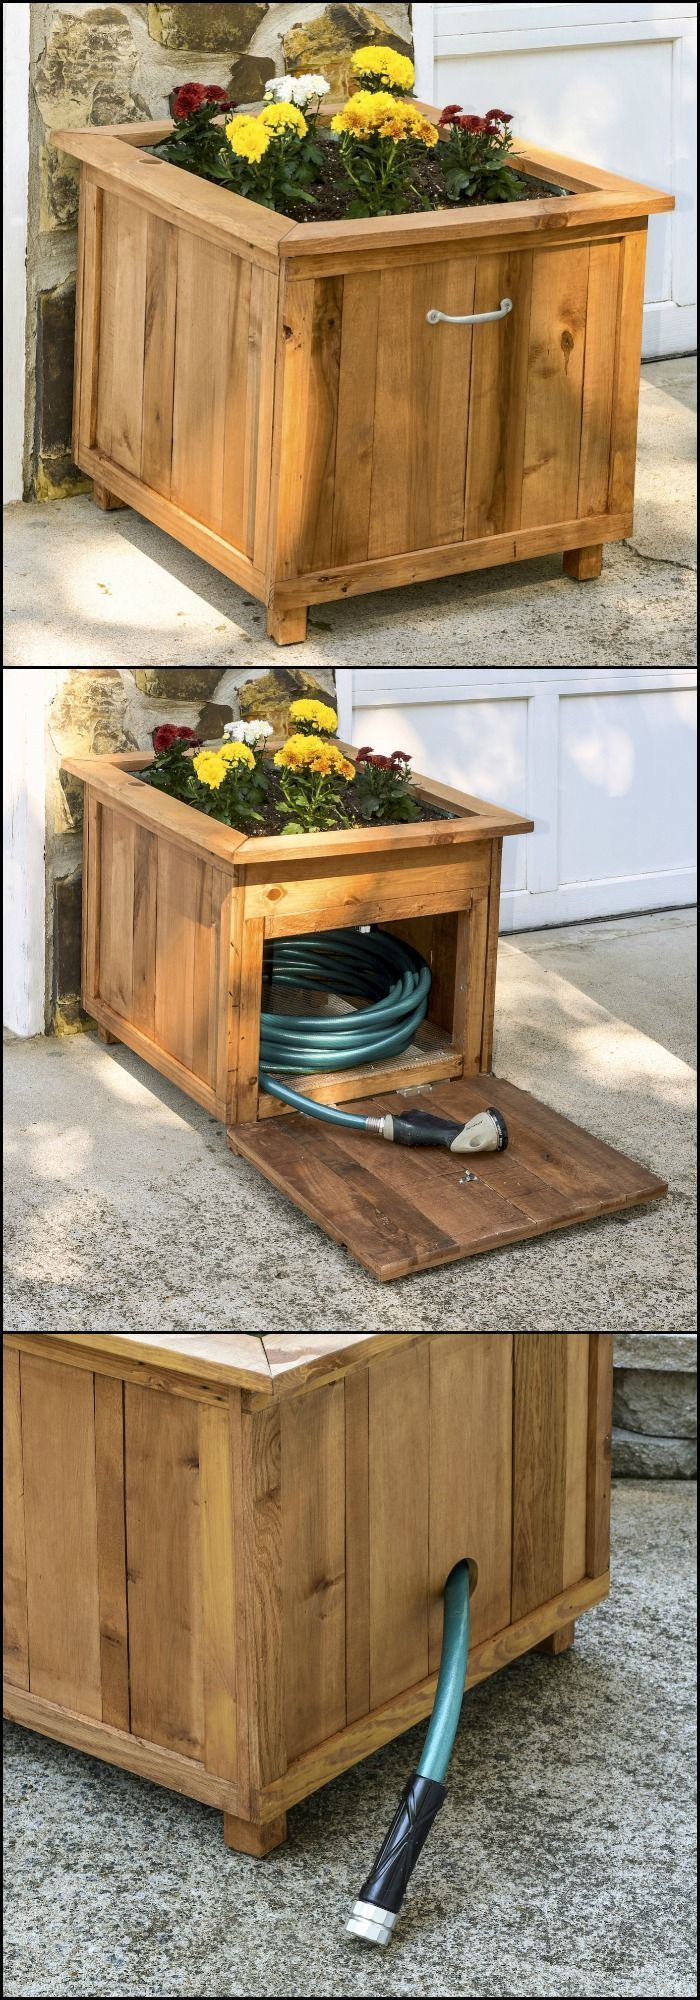 Epsom decking over a raised eyesore ashwell landscapes - Hide Your Garden Hose In This Diy Hose Storage With Planter To Keep Your Yard Beautiful